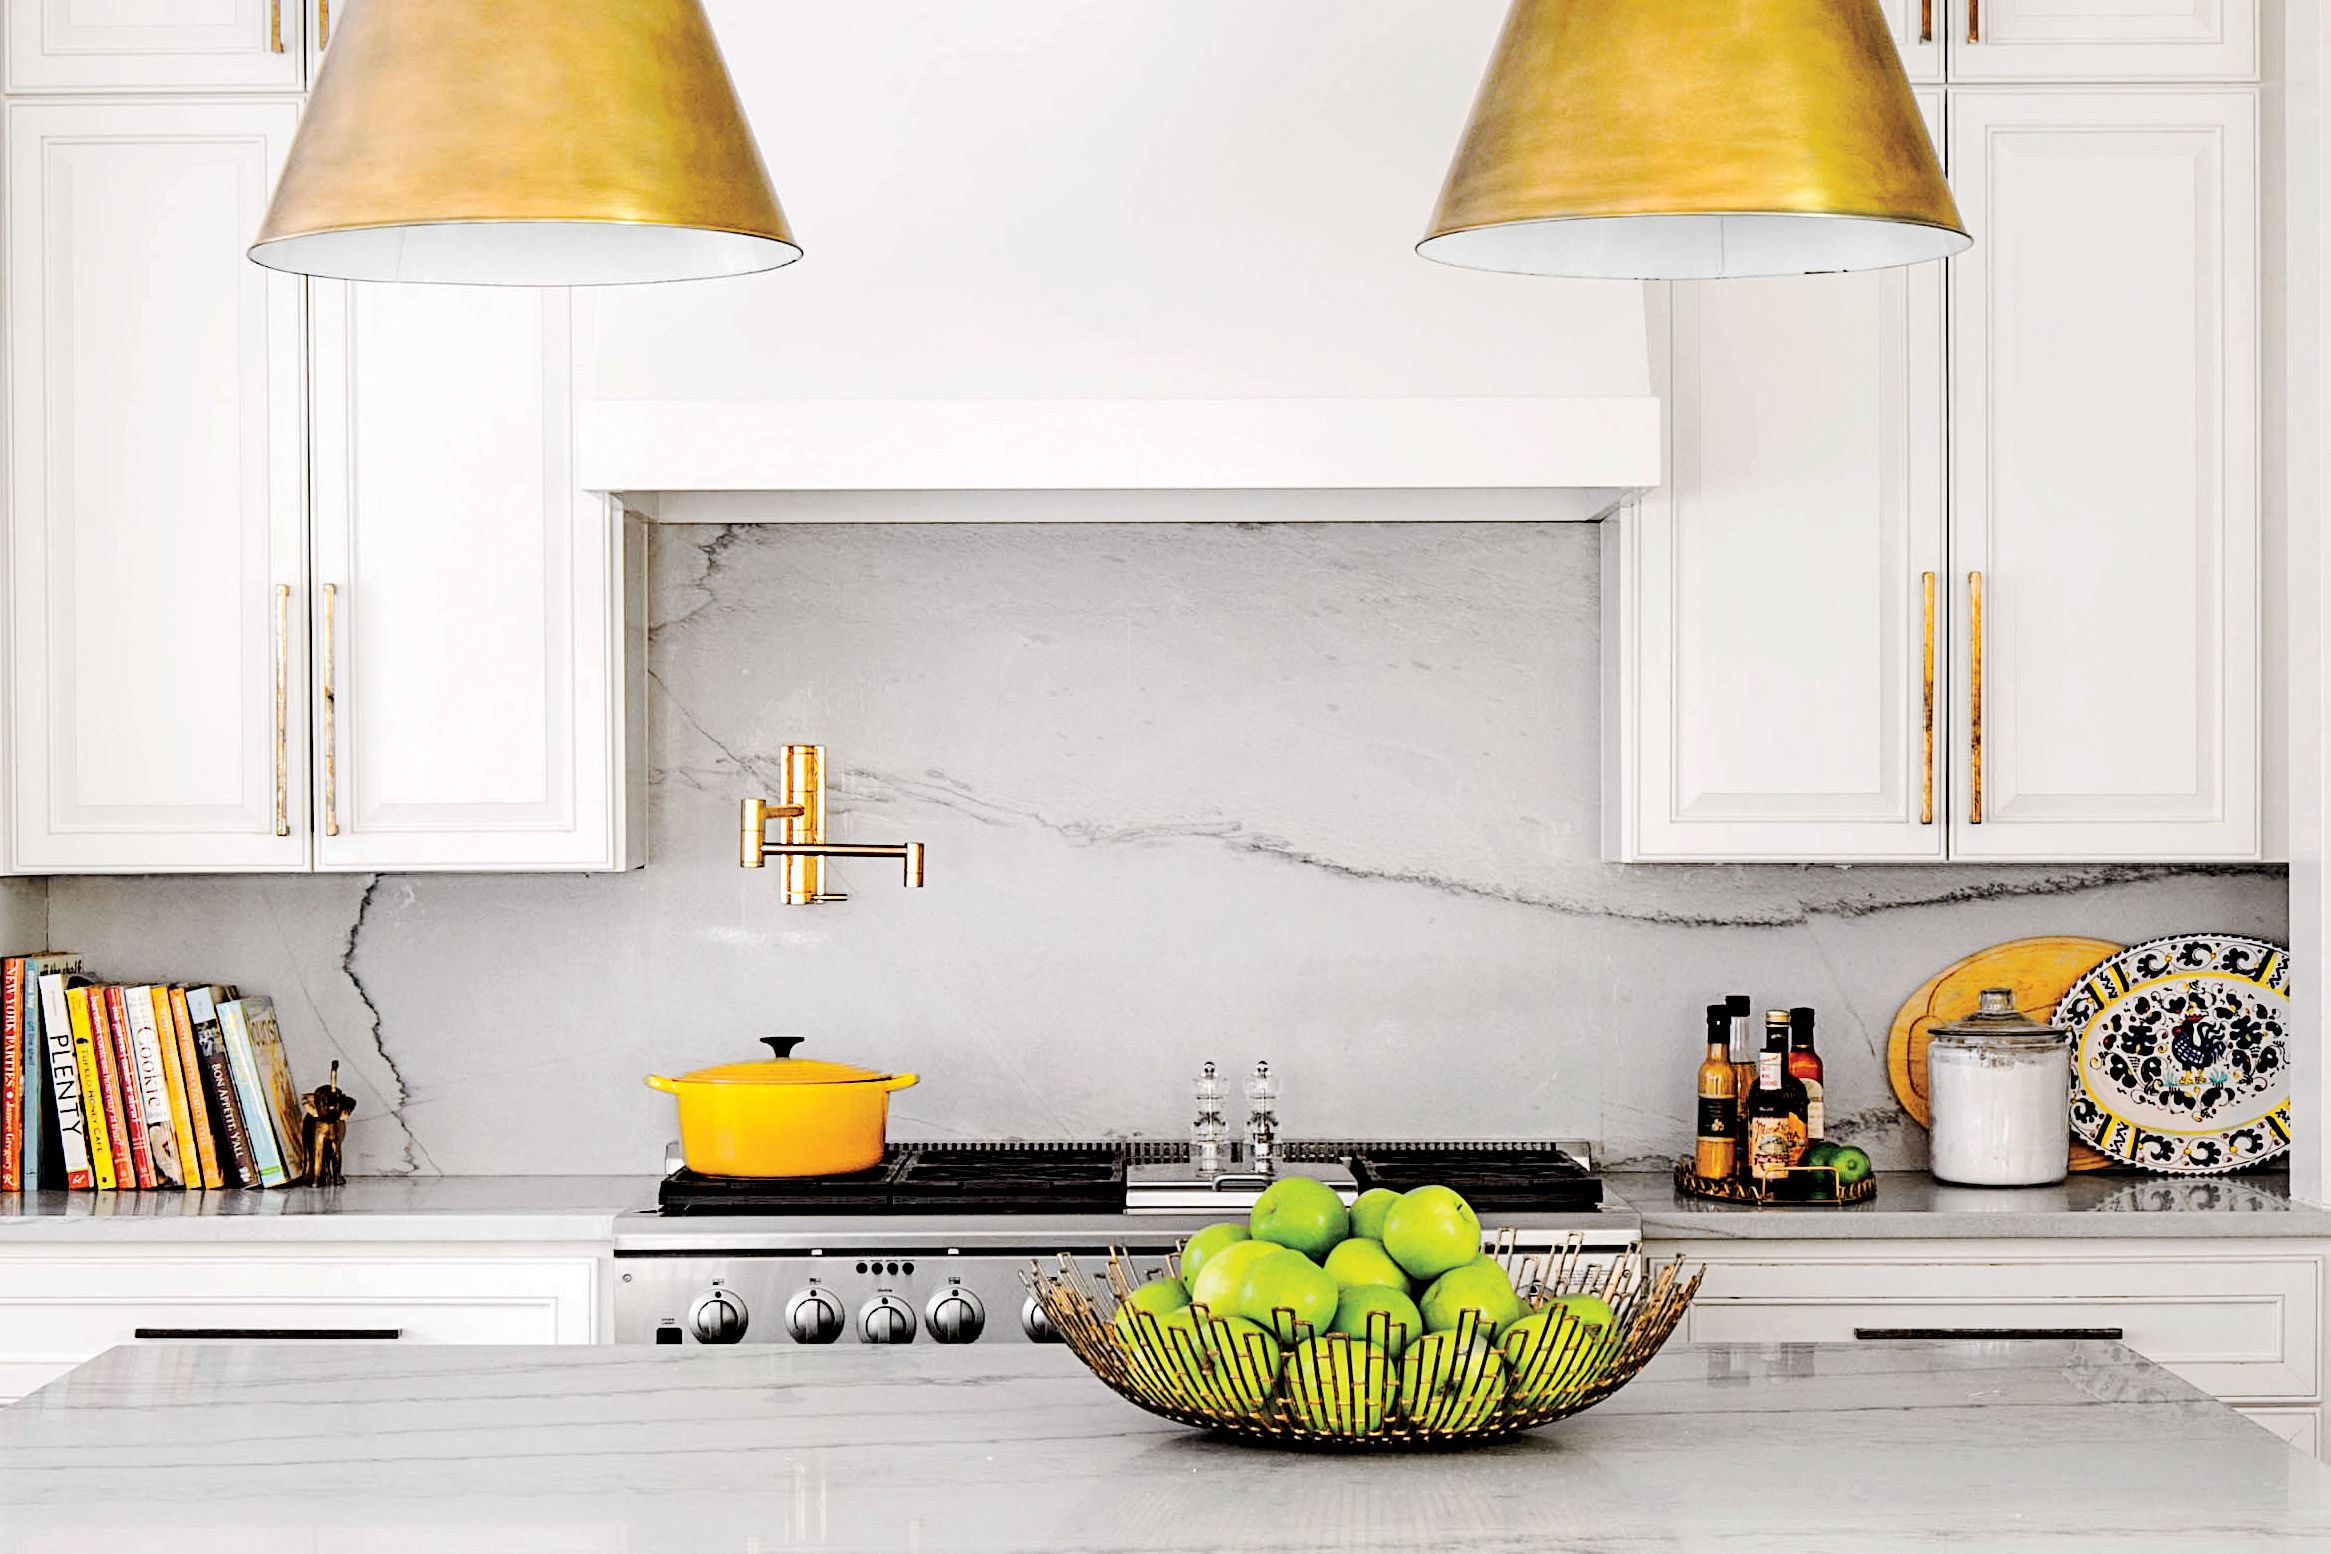 10 Classic Backsplash Options That Aren't White Subway Tile